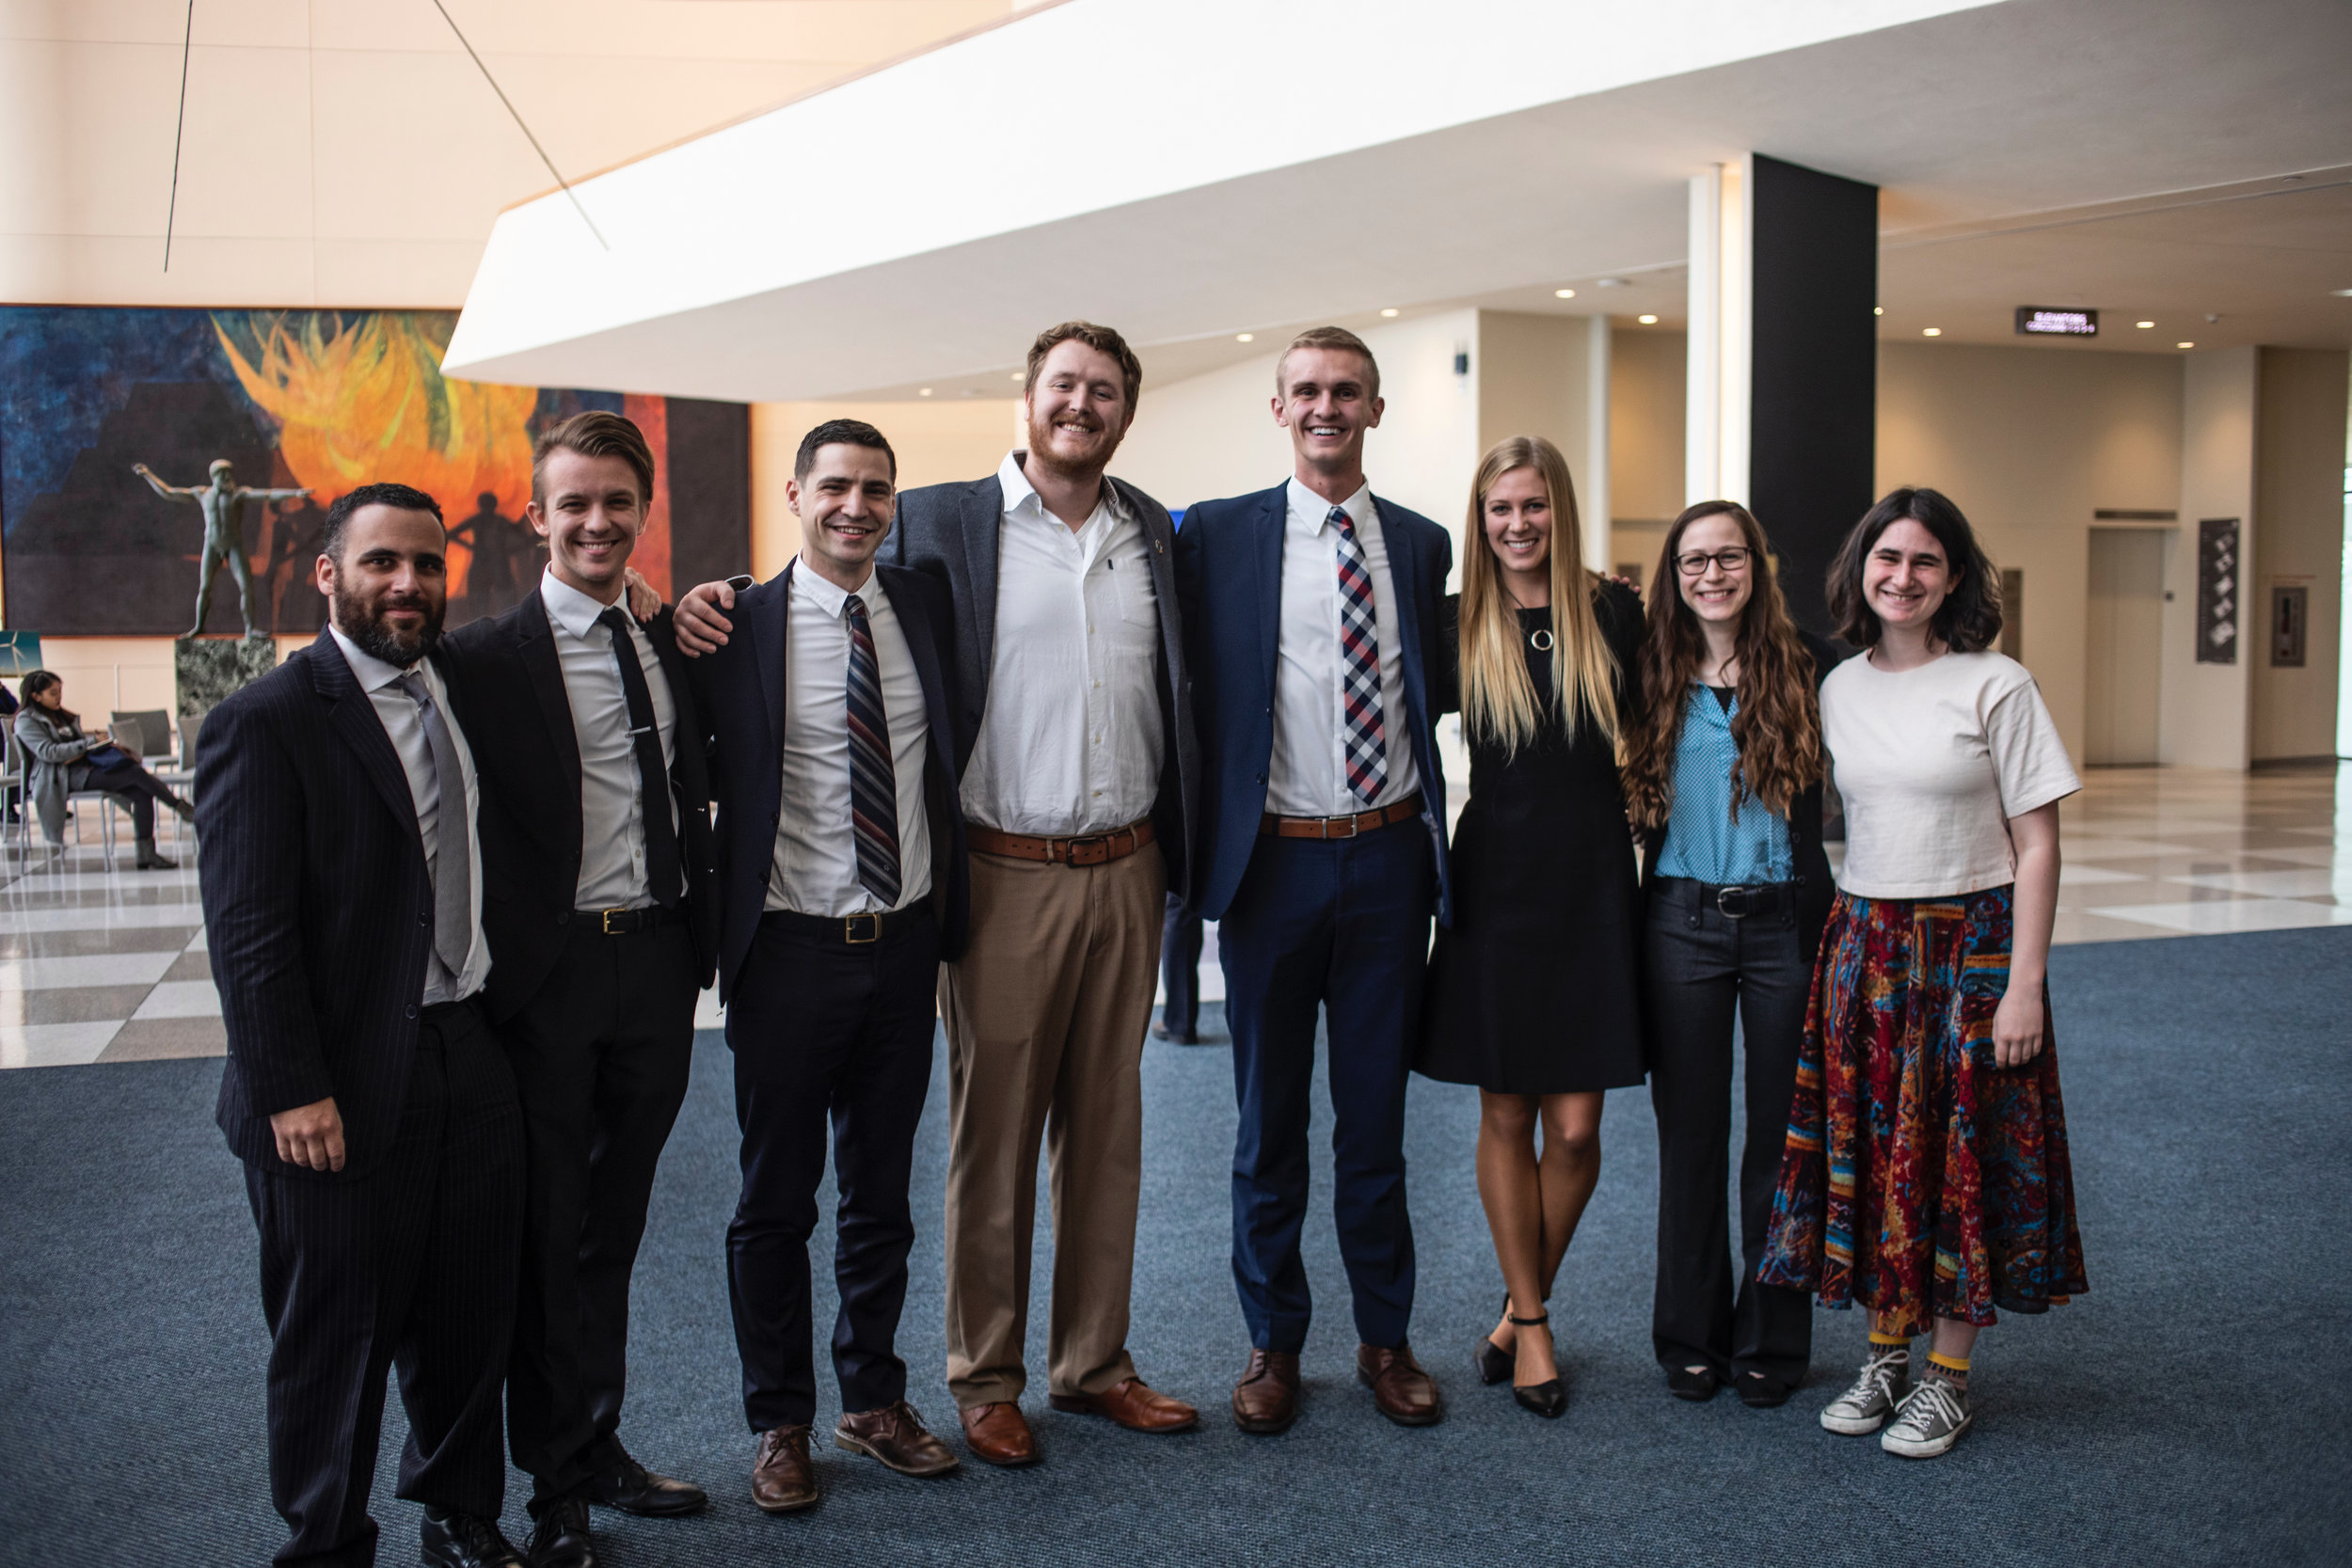 The IOR delegation, and other inspiring youth with Michael Scott Peters, U.S. Youth Observer to the UN. From left to right: Juan, Sebastian, Austin, Chris, Michael, Caroline, Laurel, and Ellie.  Photo Courtesy of Christopher Dowell Photography